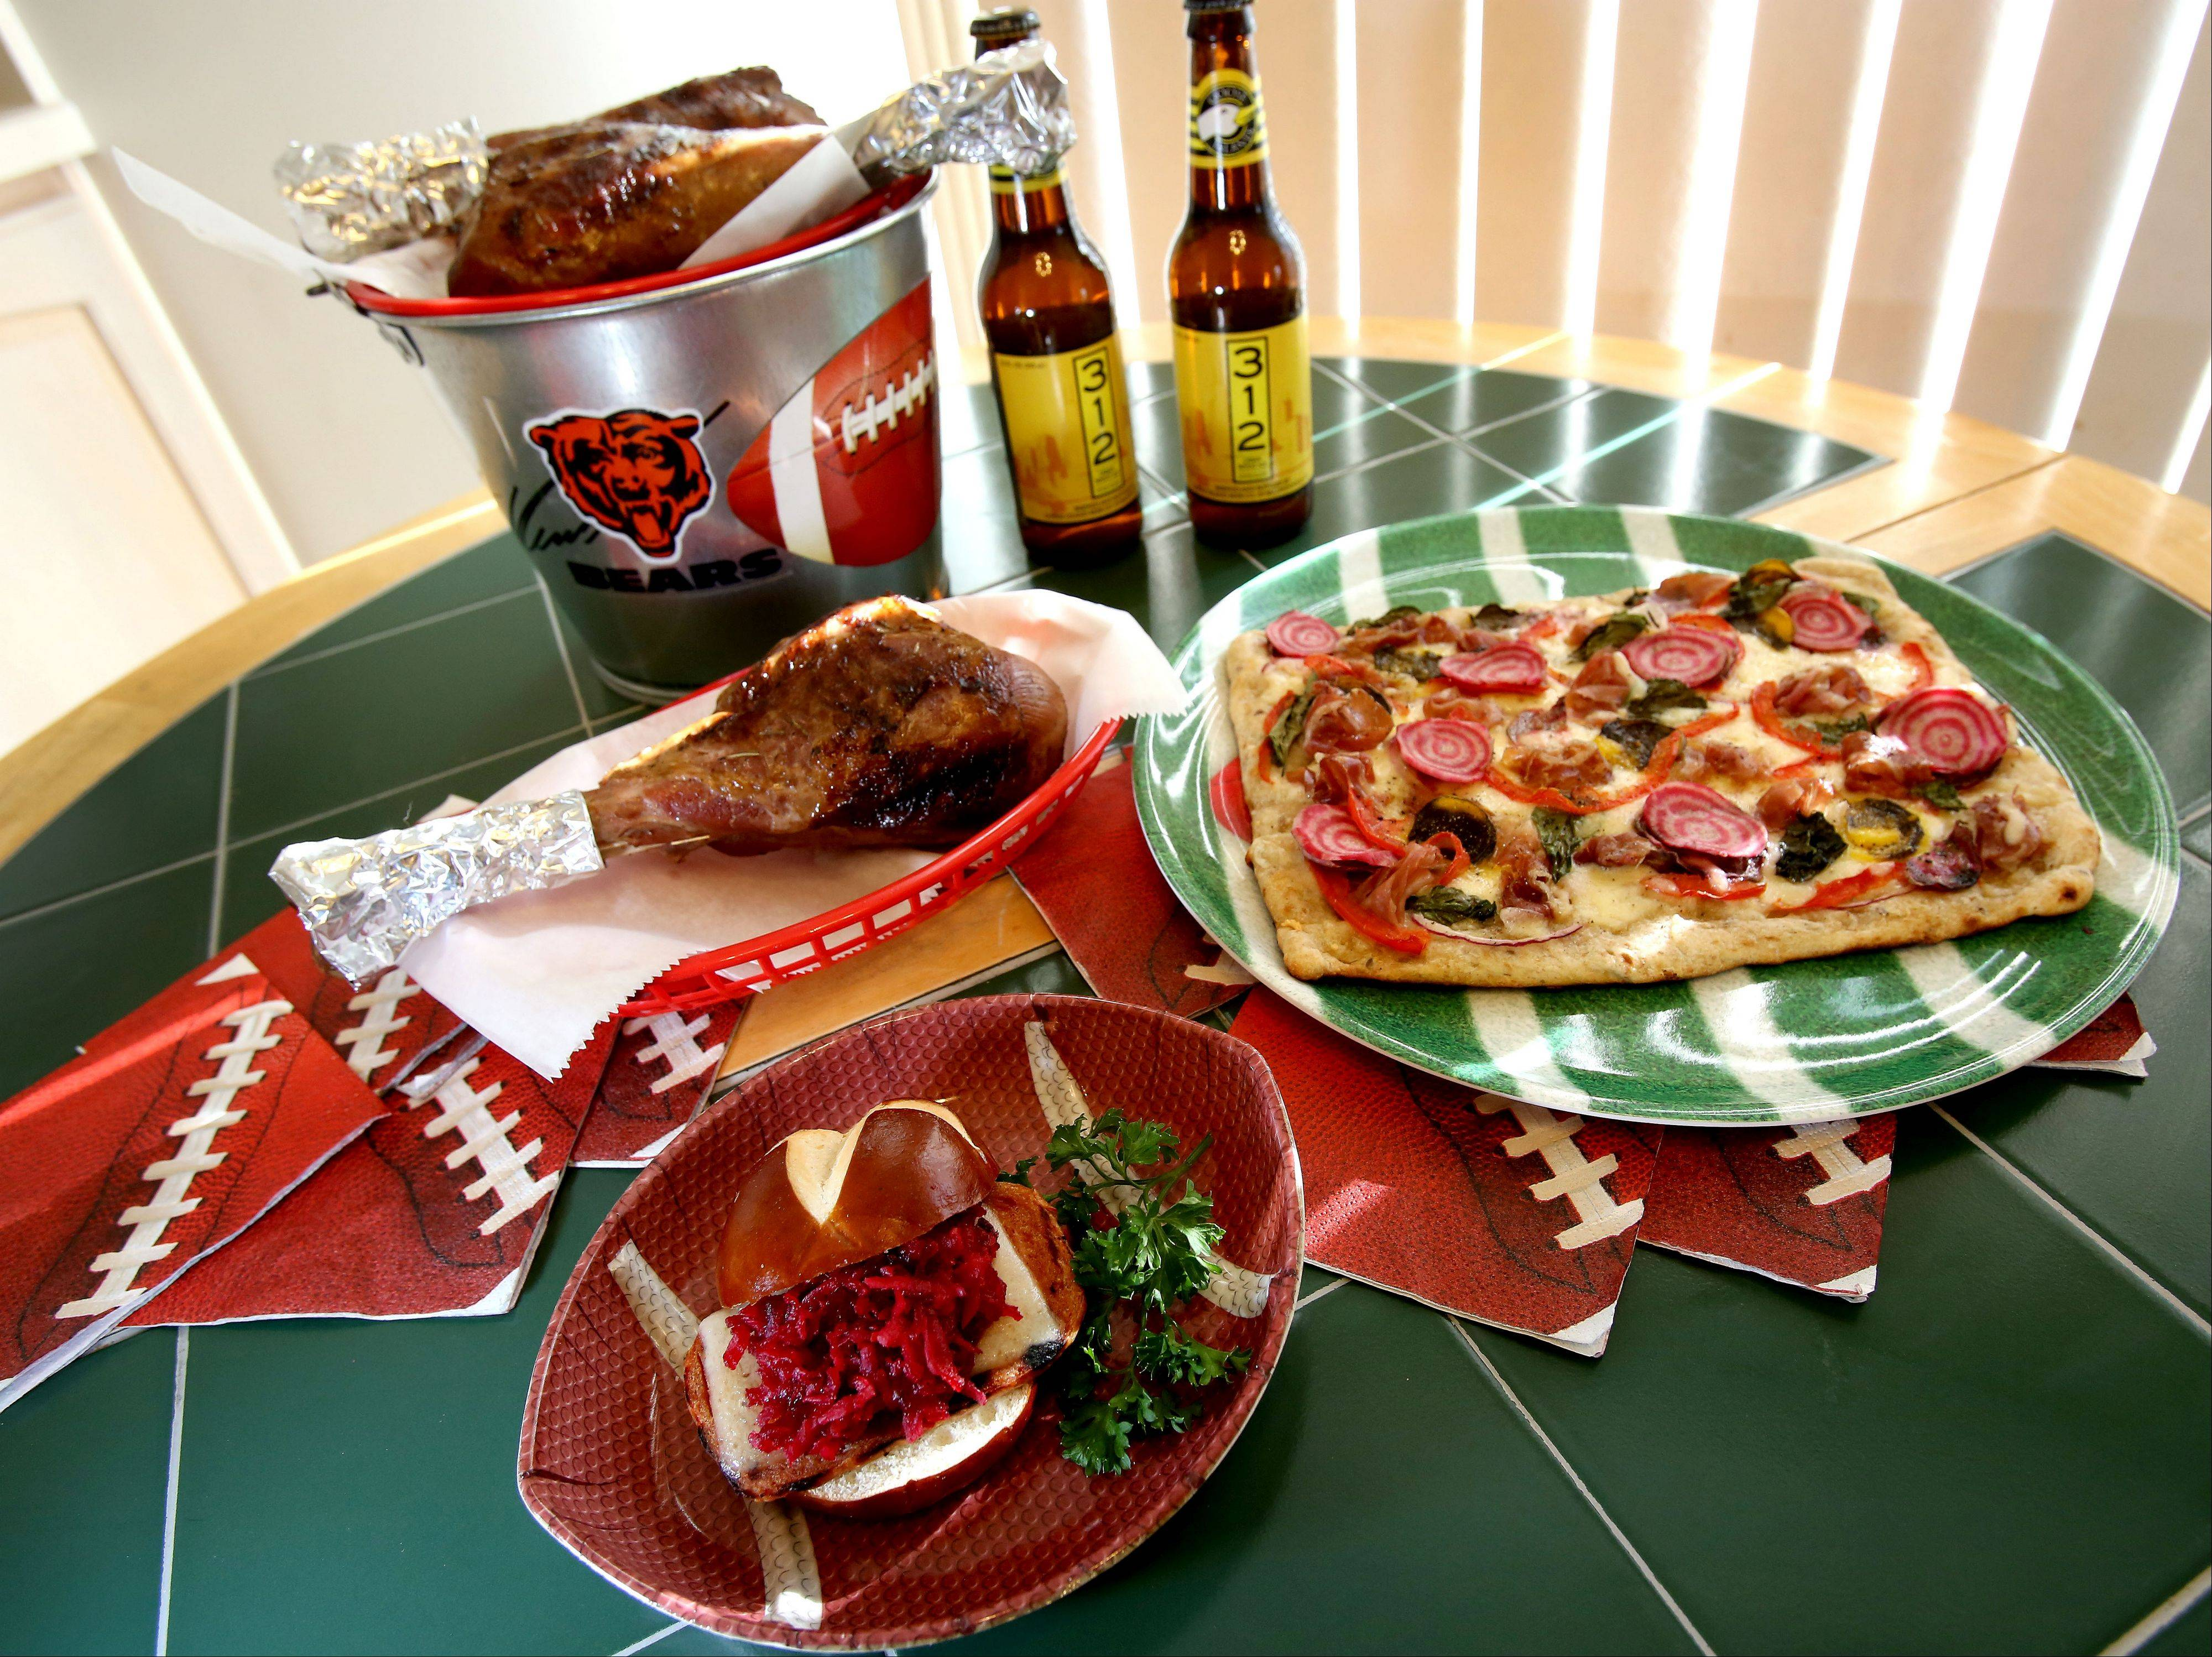 Grilled Game Day Pizza, Grilled Spam & Havarti Sliders with Baby Beets and Apple Orange Marmalade Slaw and Apple Cider-Brined Turkey Legs by Lori Wiktorek of Aurora for the Cook of the Week Challenge.